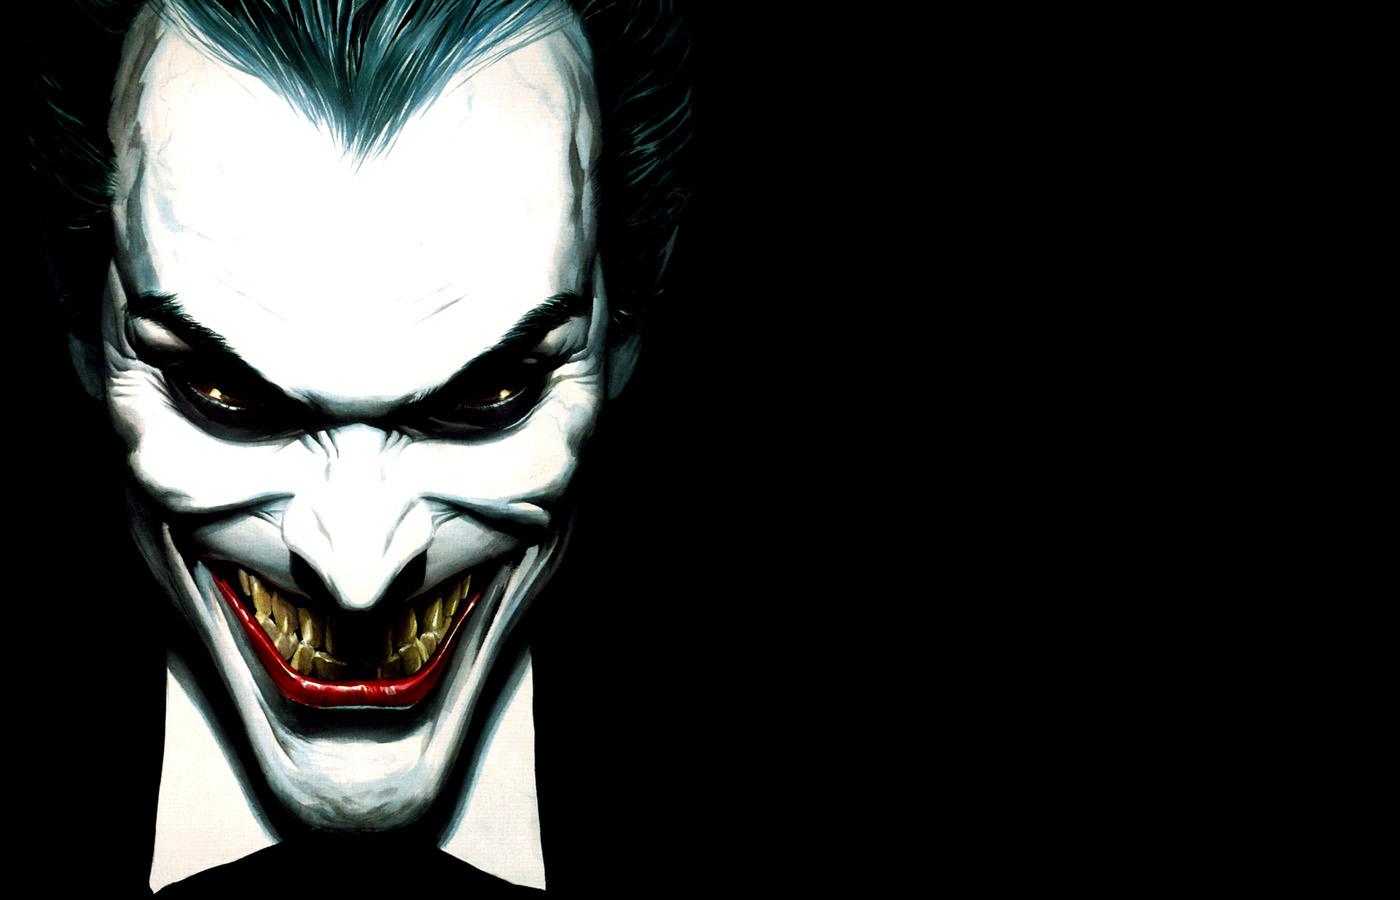 1400x900 Joker face desktop PC and Mac wallpaper